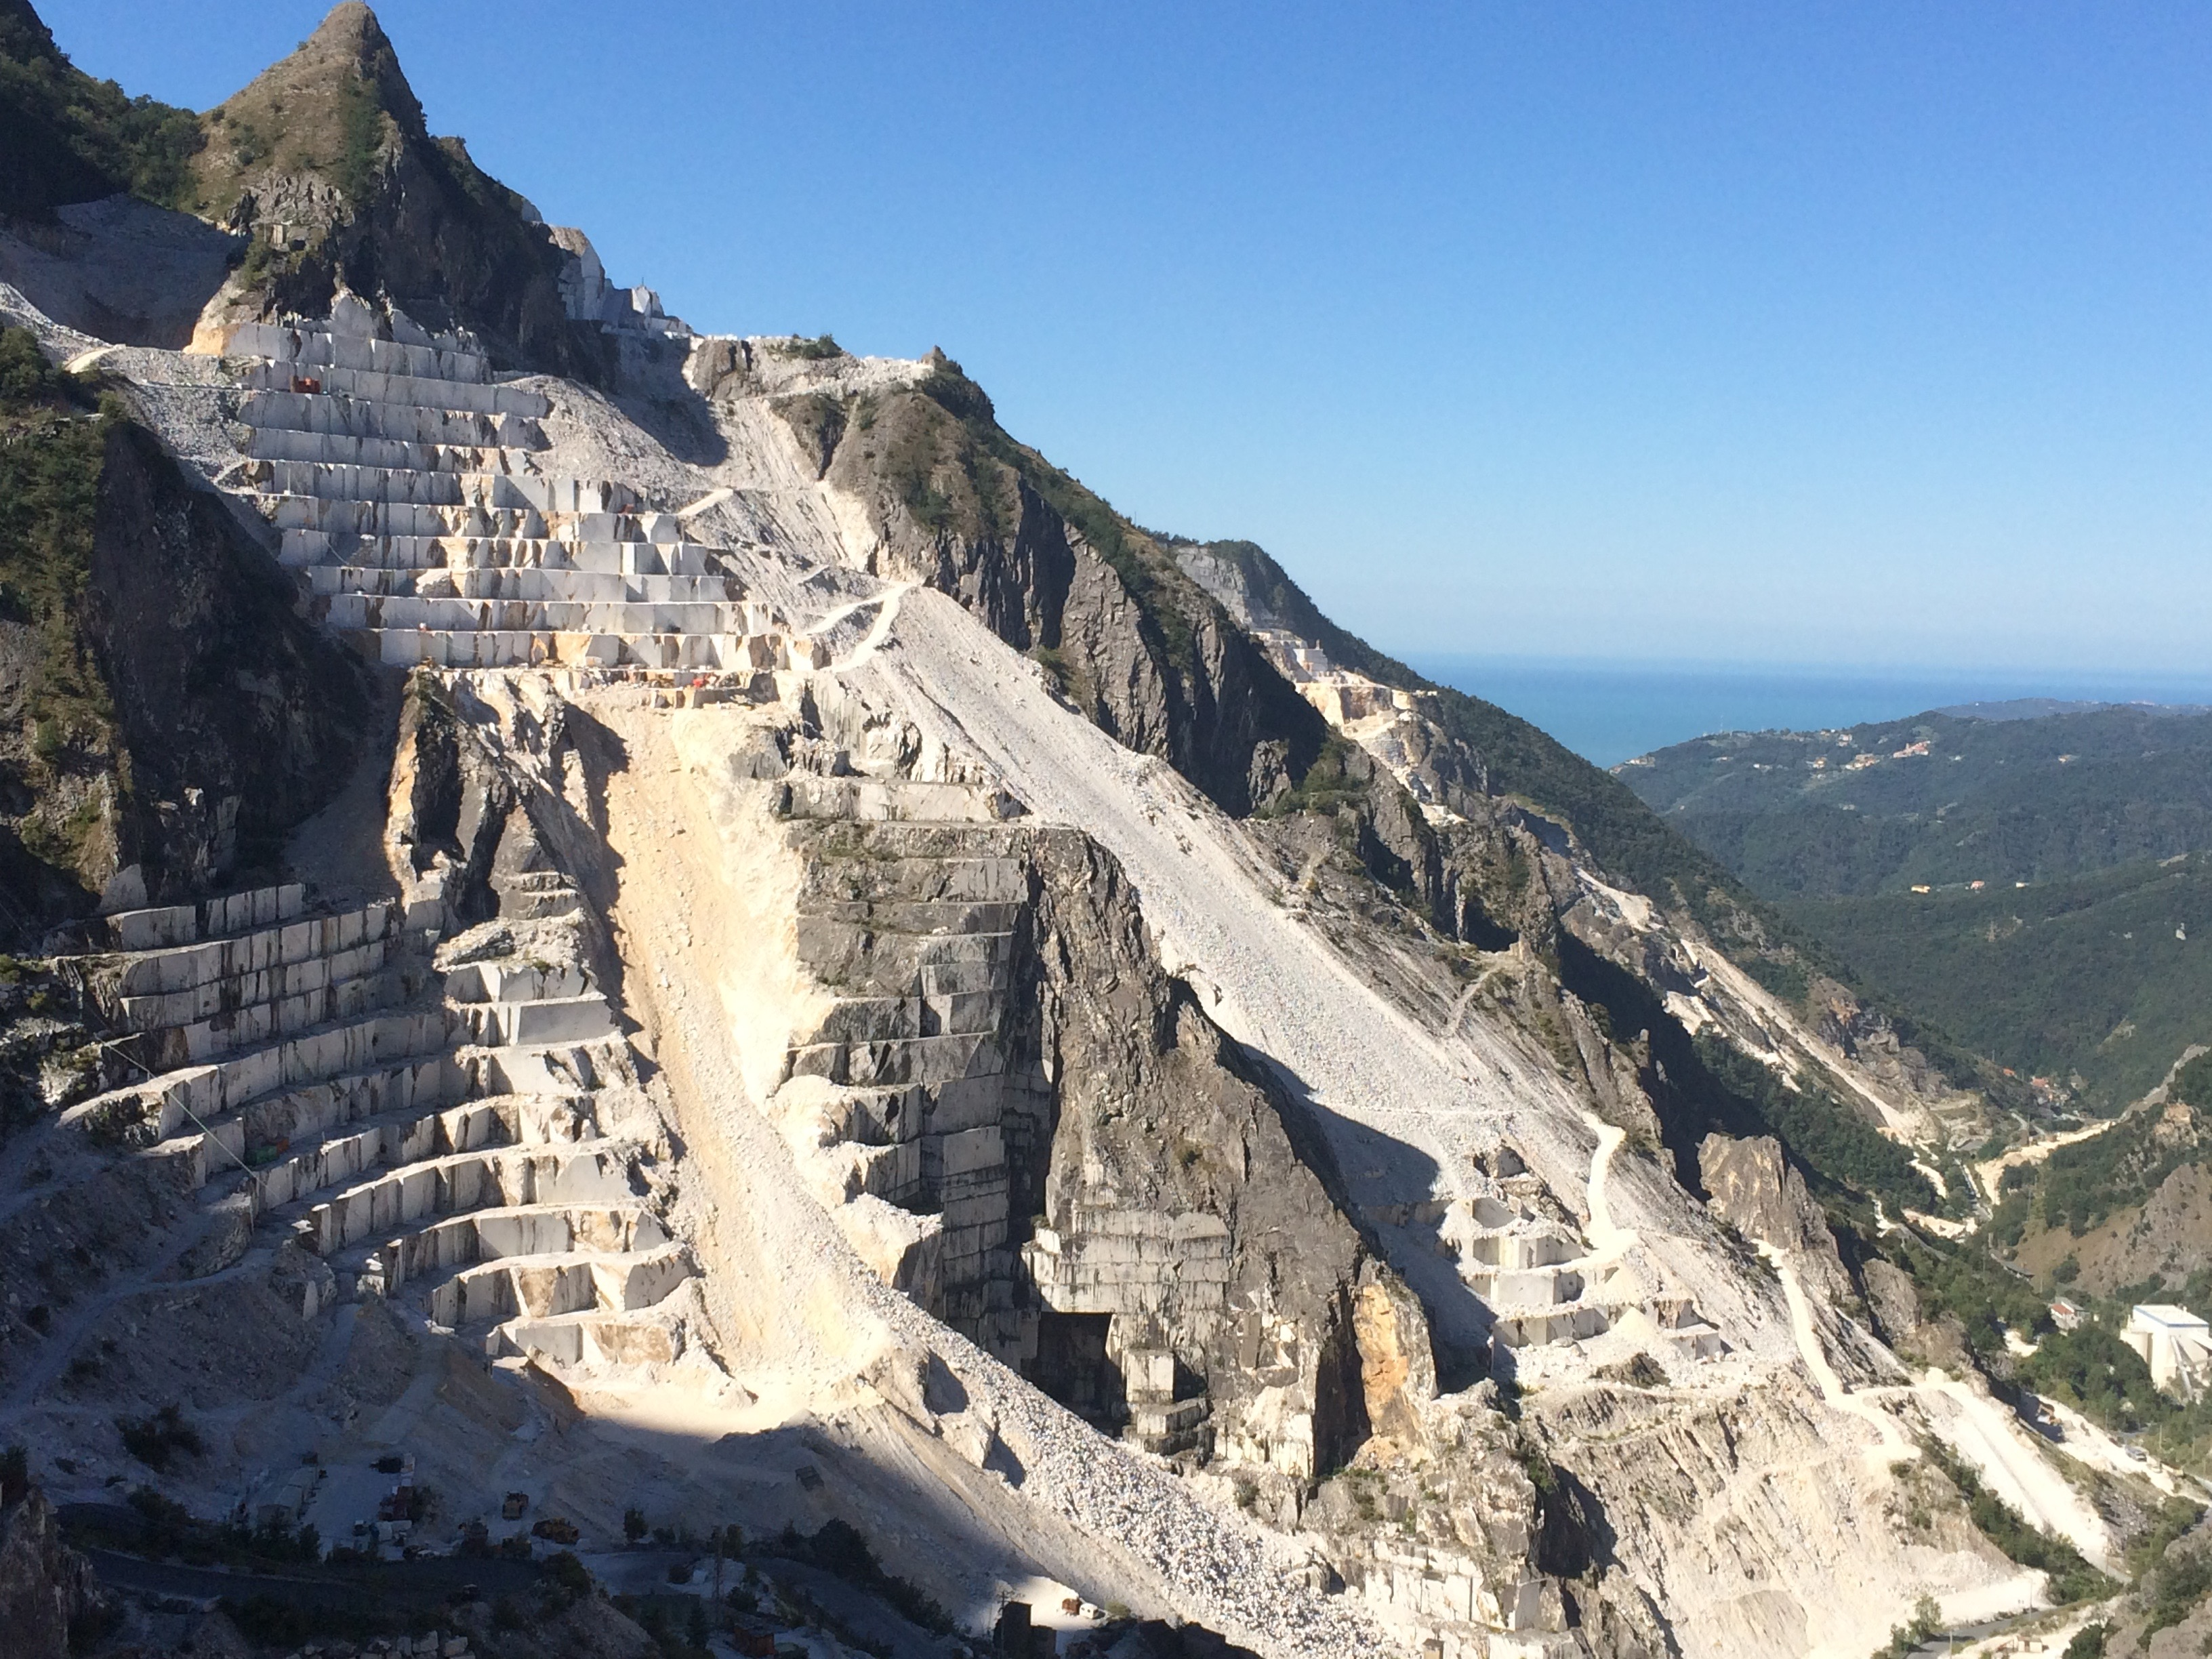 CARRARA MARBLE QUARRIES – Half day tour